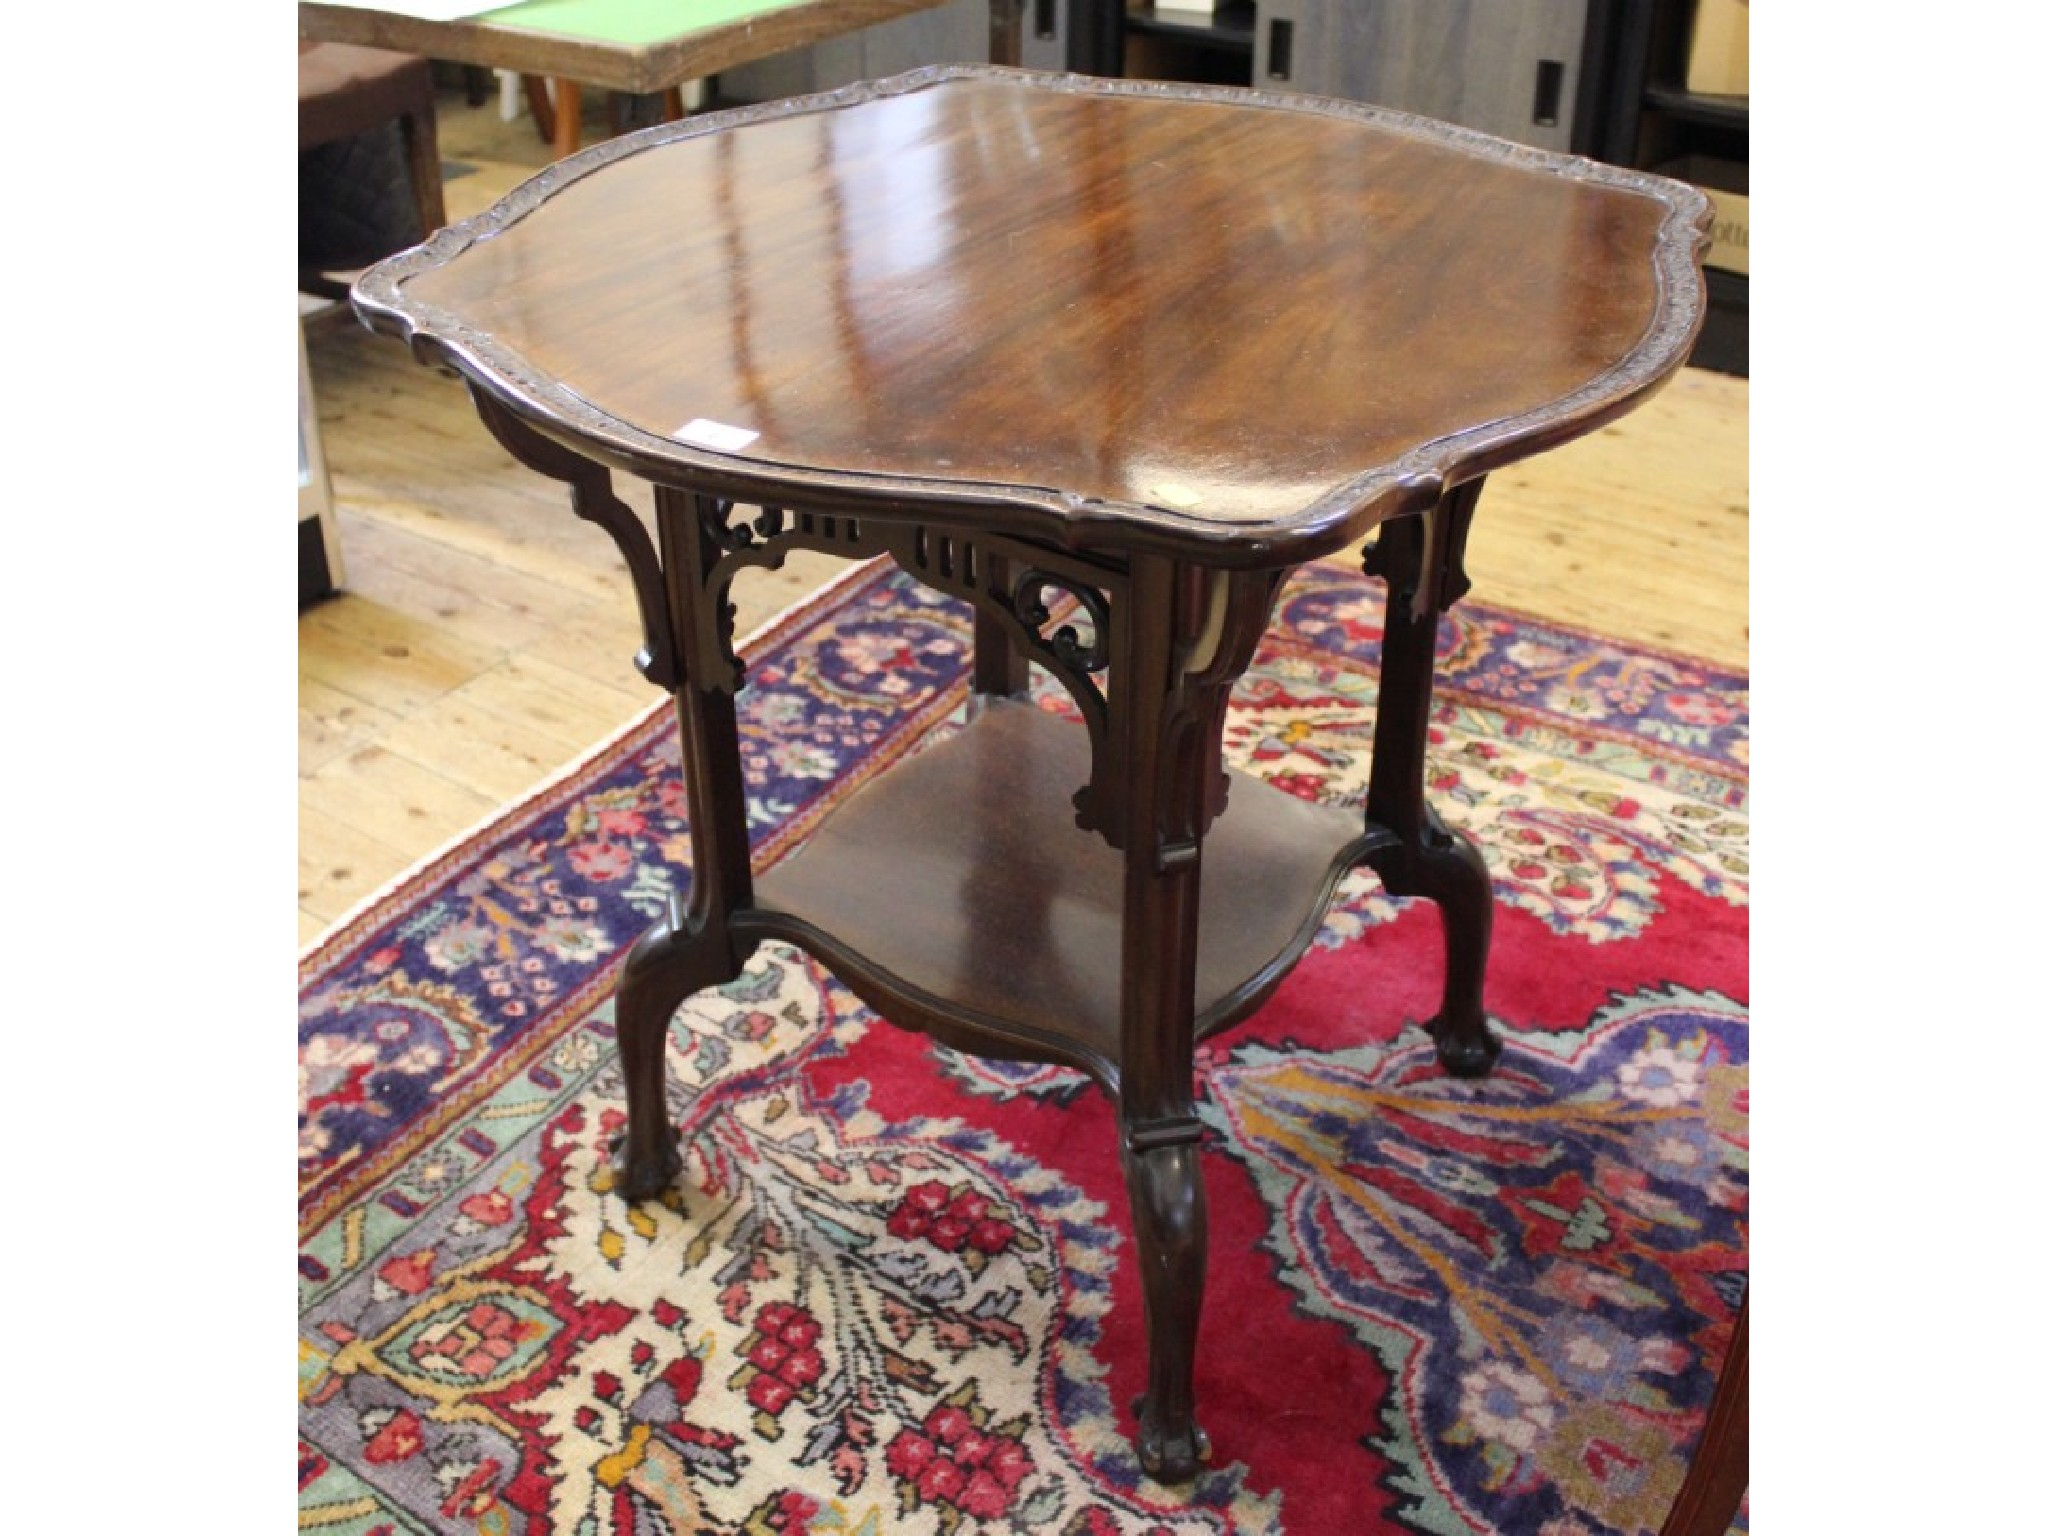 An Edwardian mahogany occasional table